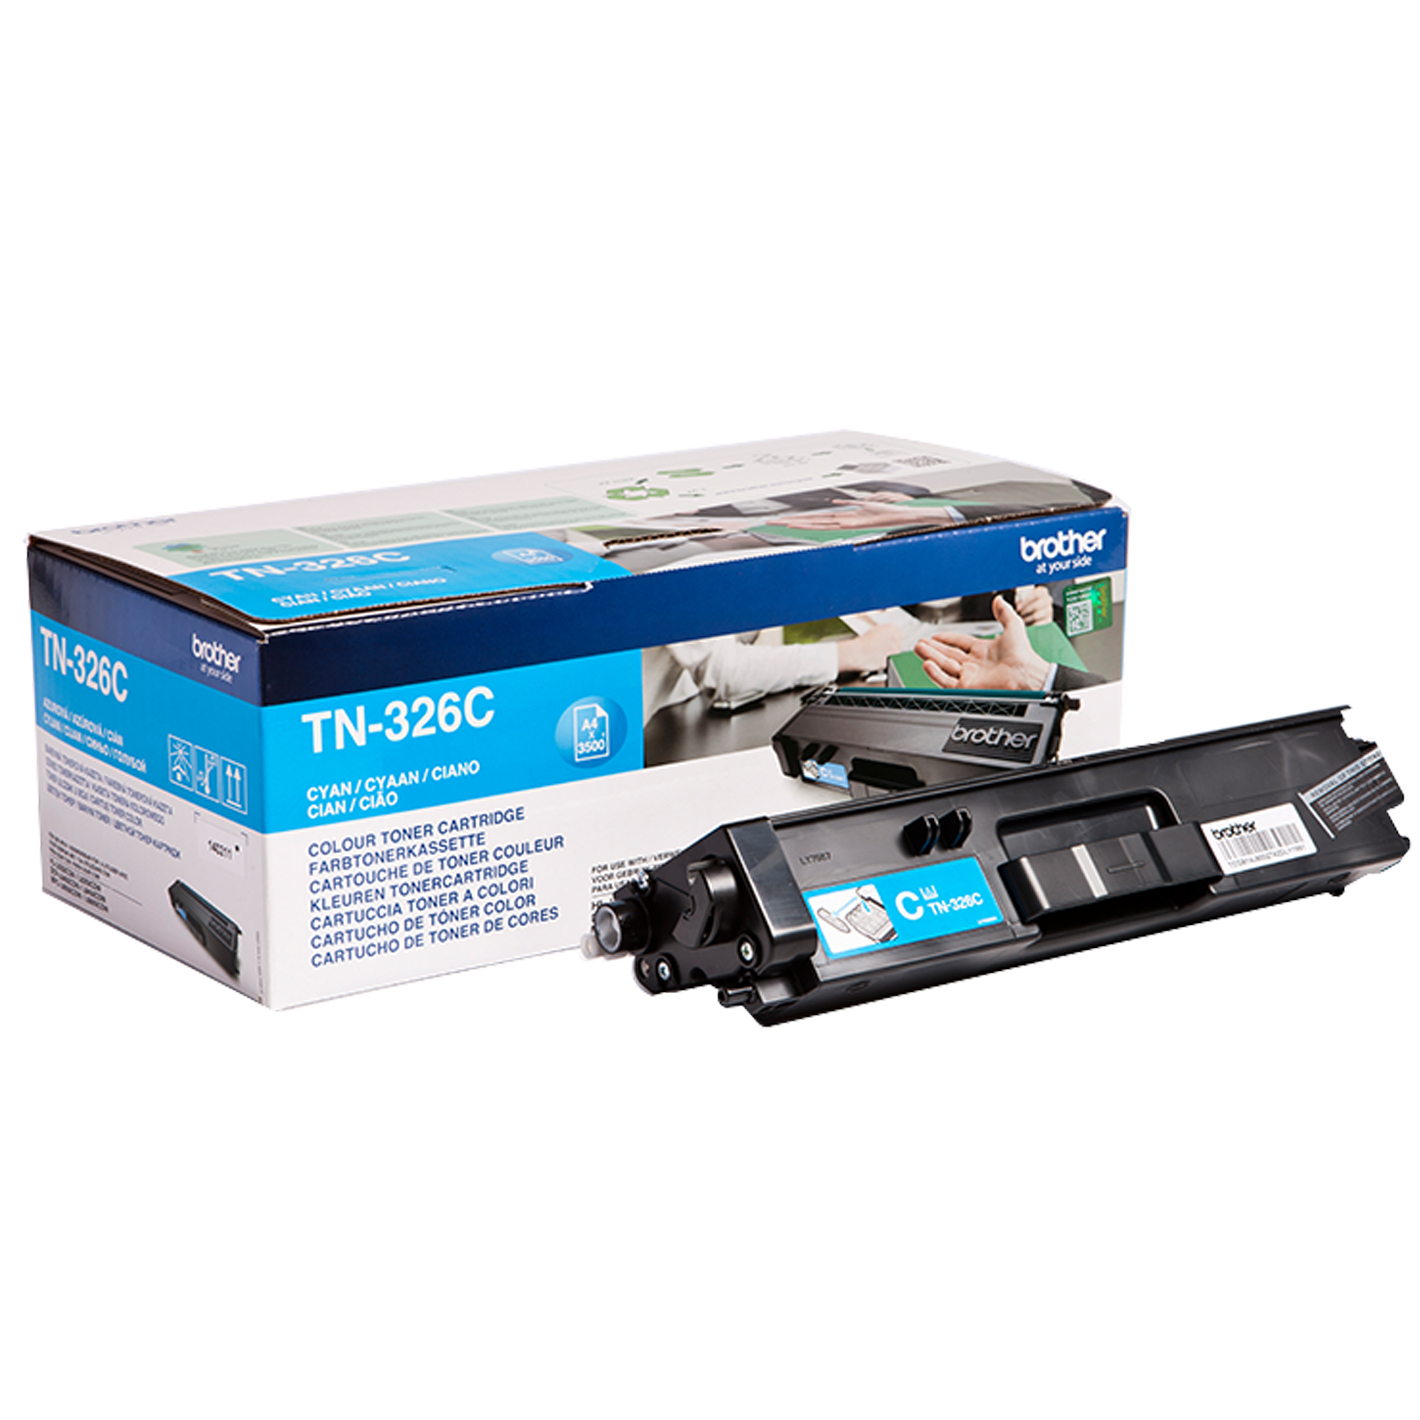 Reman Brother TN-326C Cyan Toner Cart 3k5 TN326C - rem01